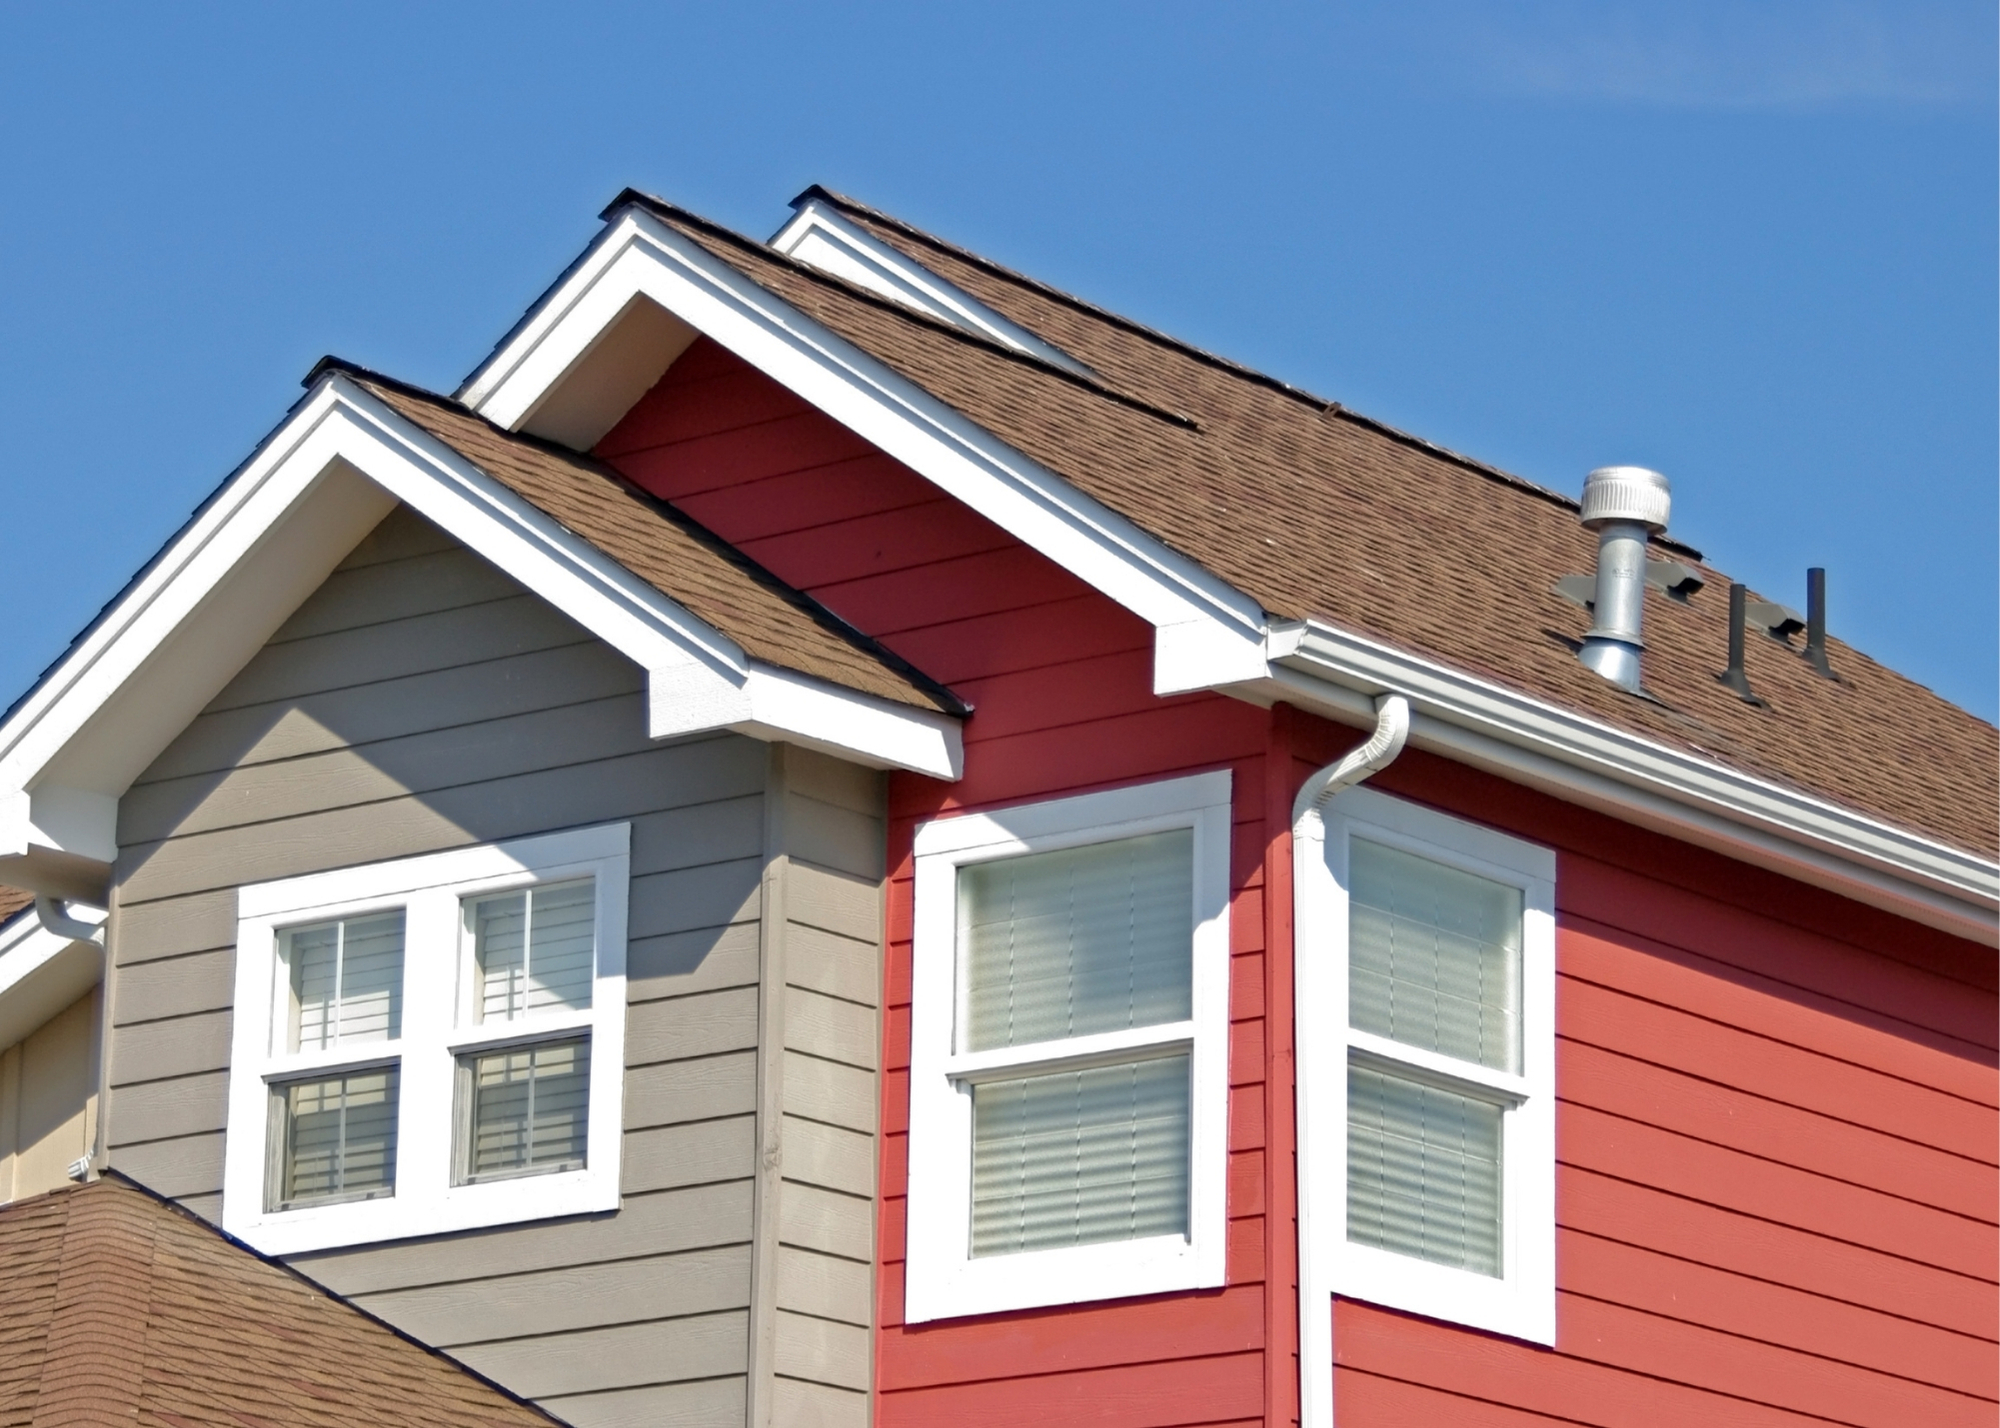 Roofing Fayetteville NC| Fayetteville Roofing Solutions